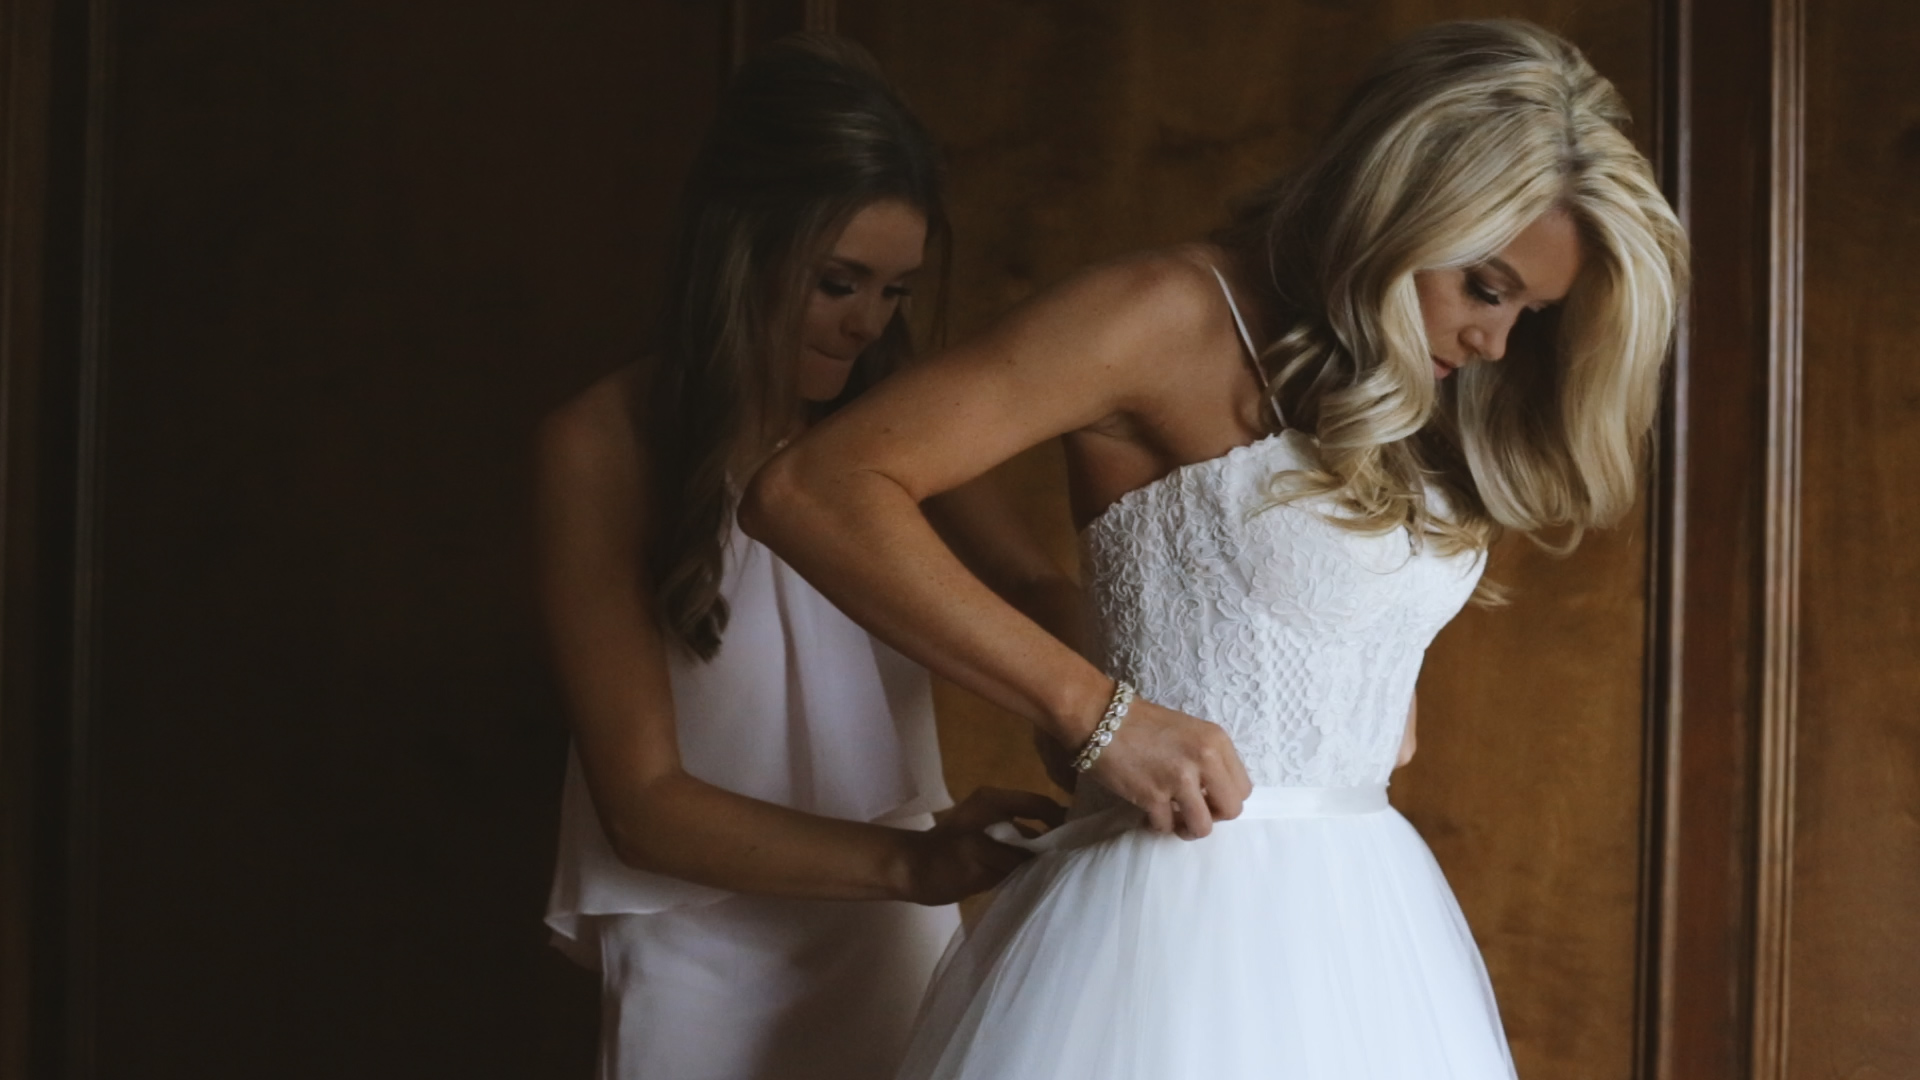 Demi-wedding-video-wedding-dress-maid-of-honor.jpg